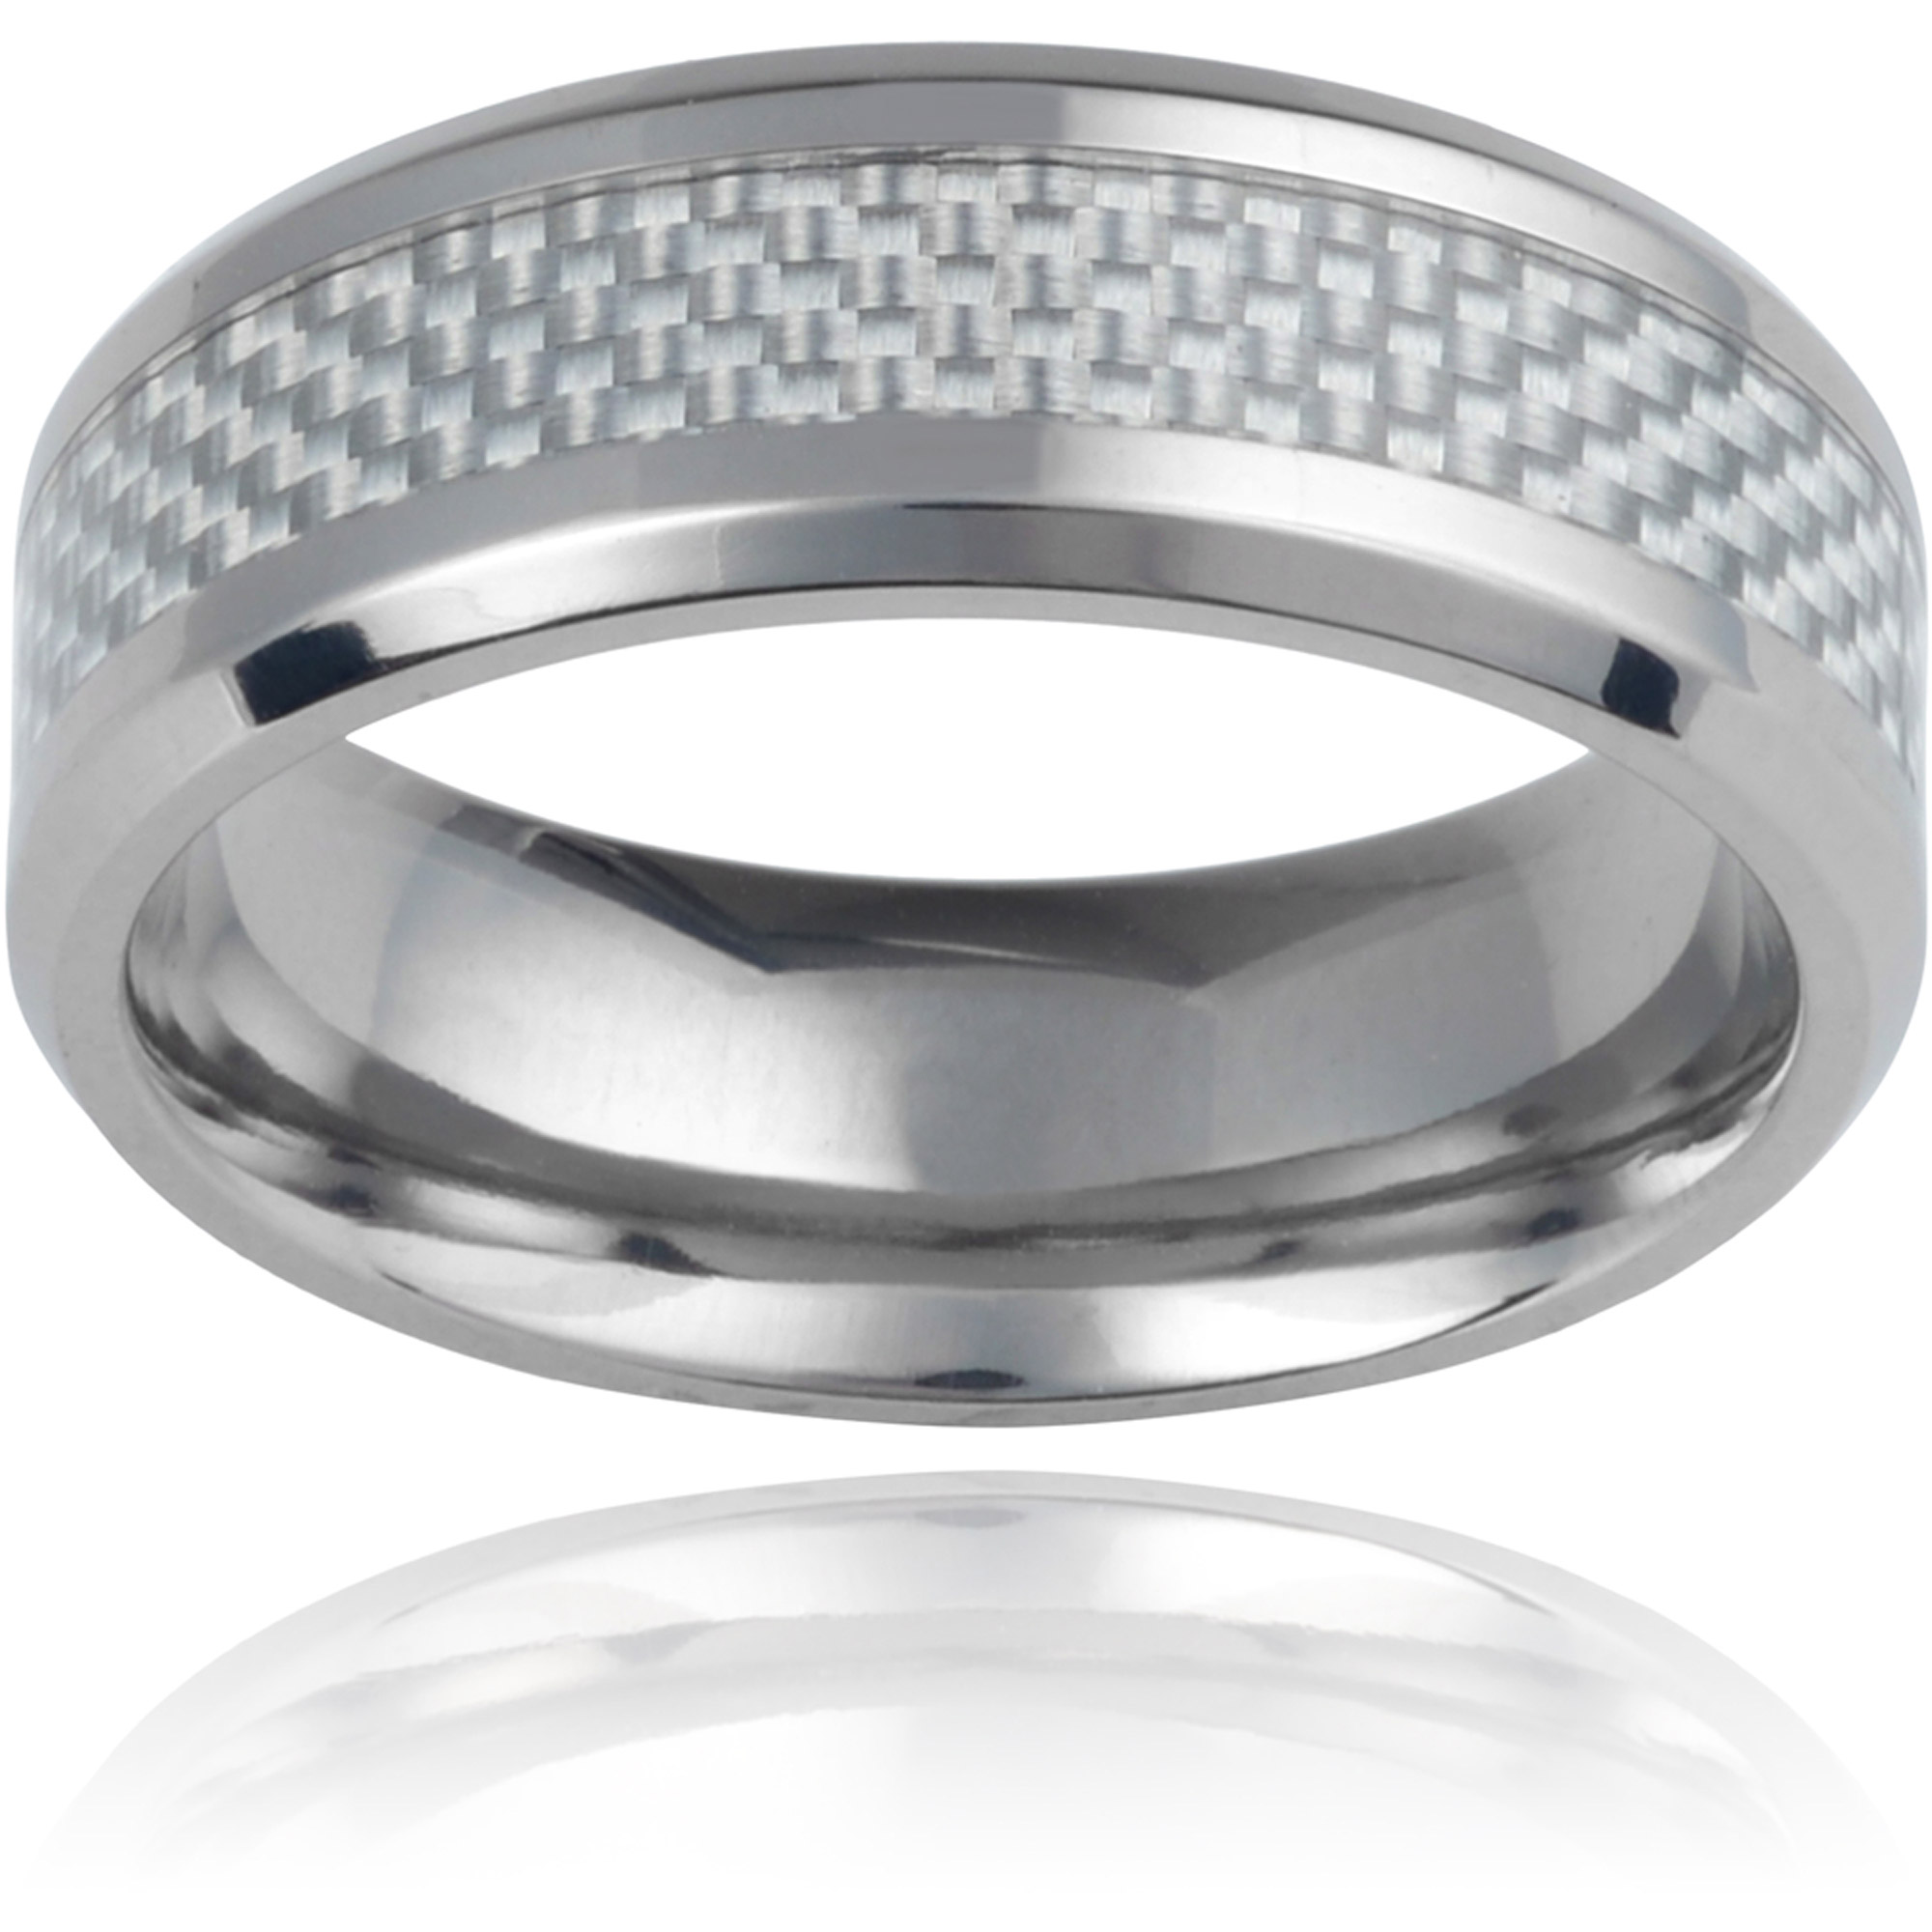 Daxx Men's Titanium Carbon Fiber Inlay F